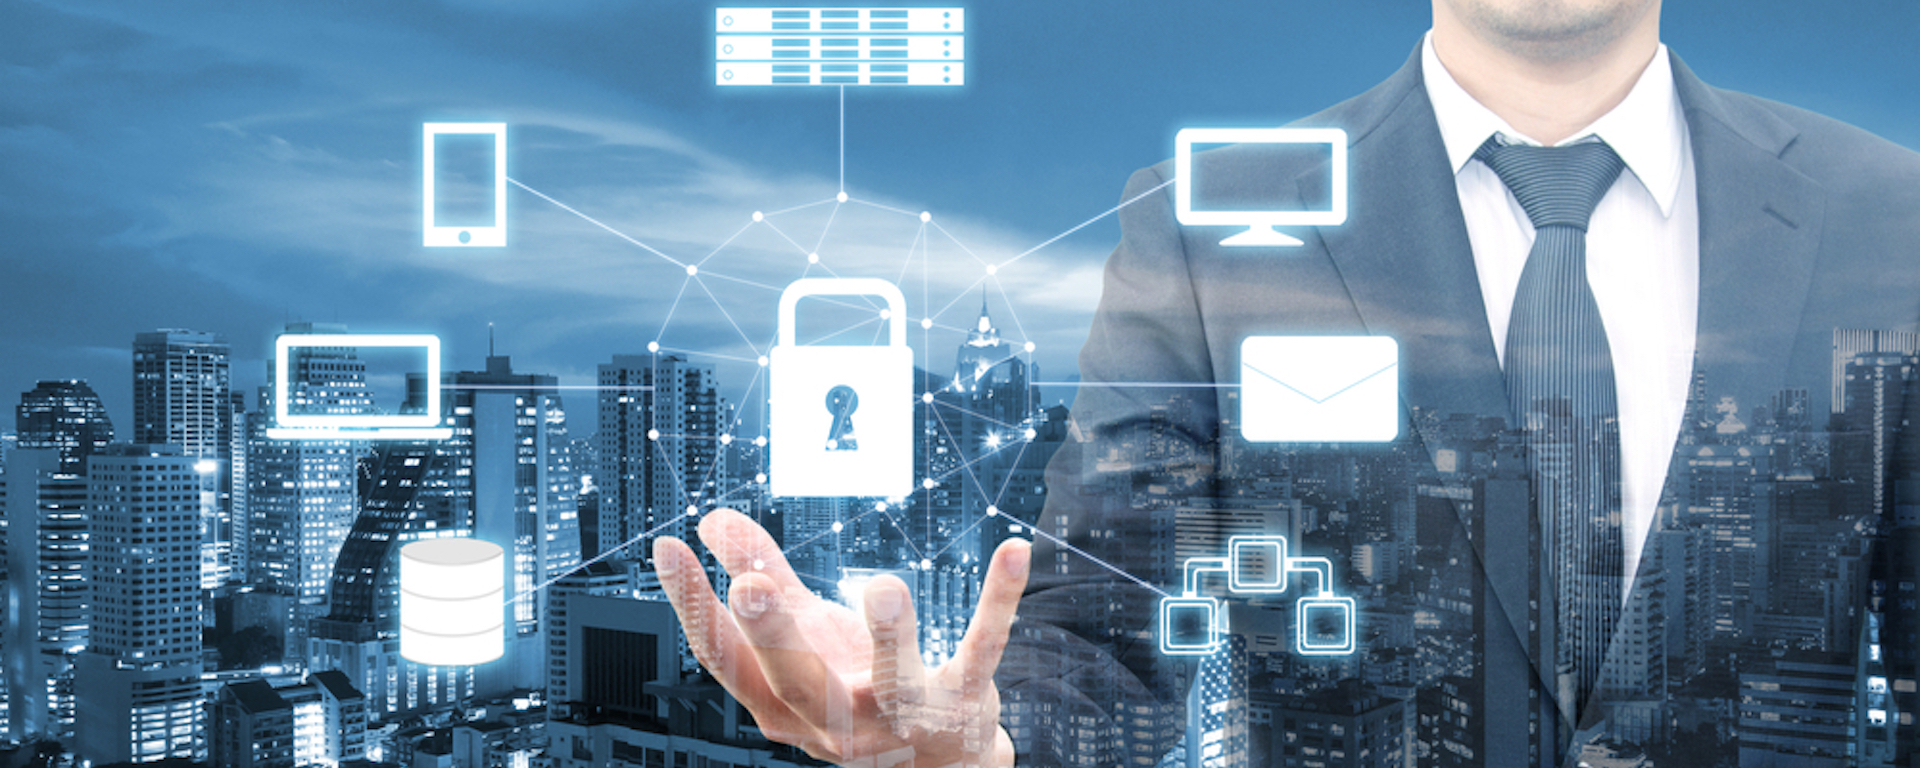 Solution providers must turn toward device management to generate positive business outcomes.